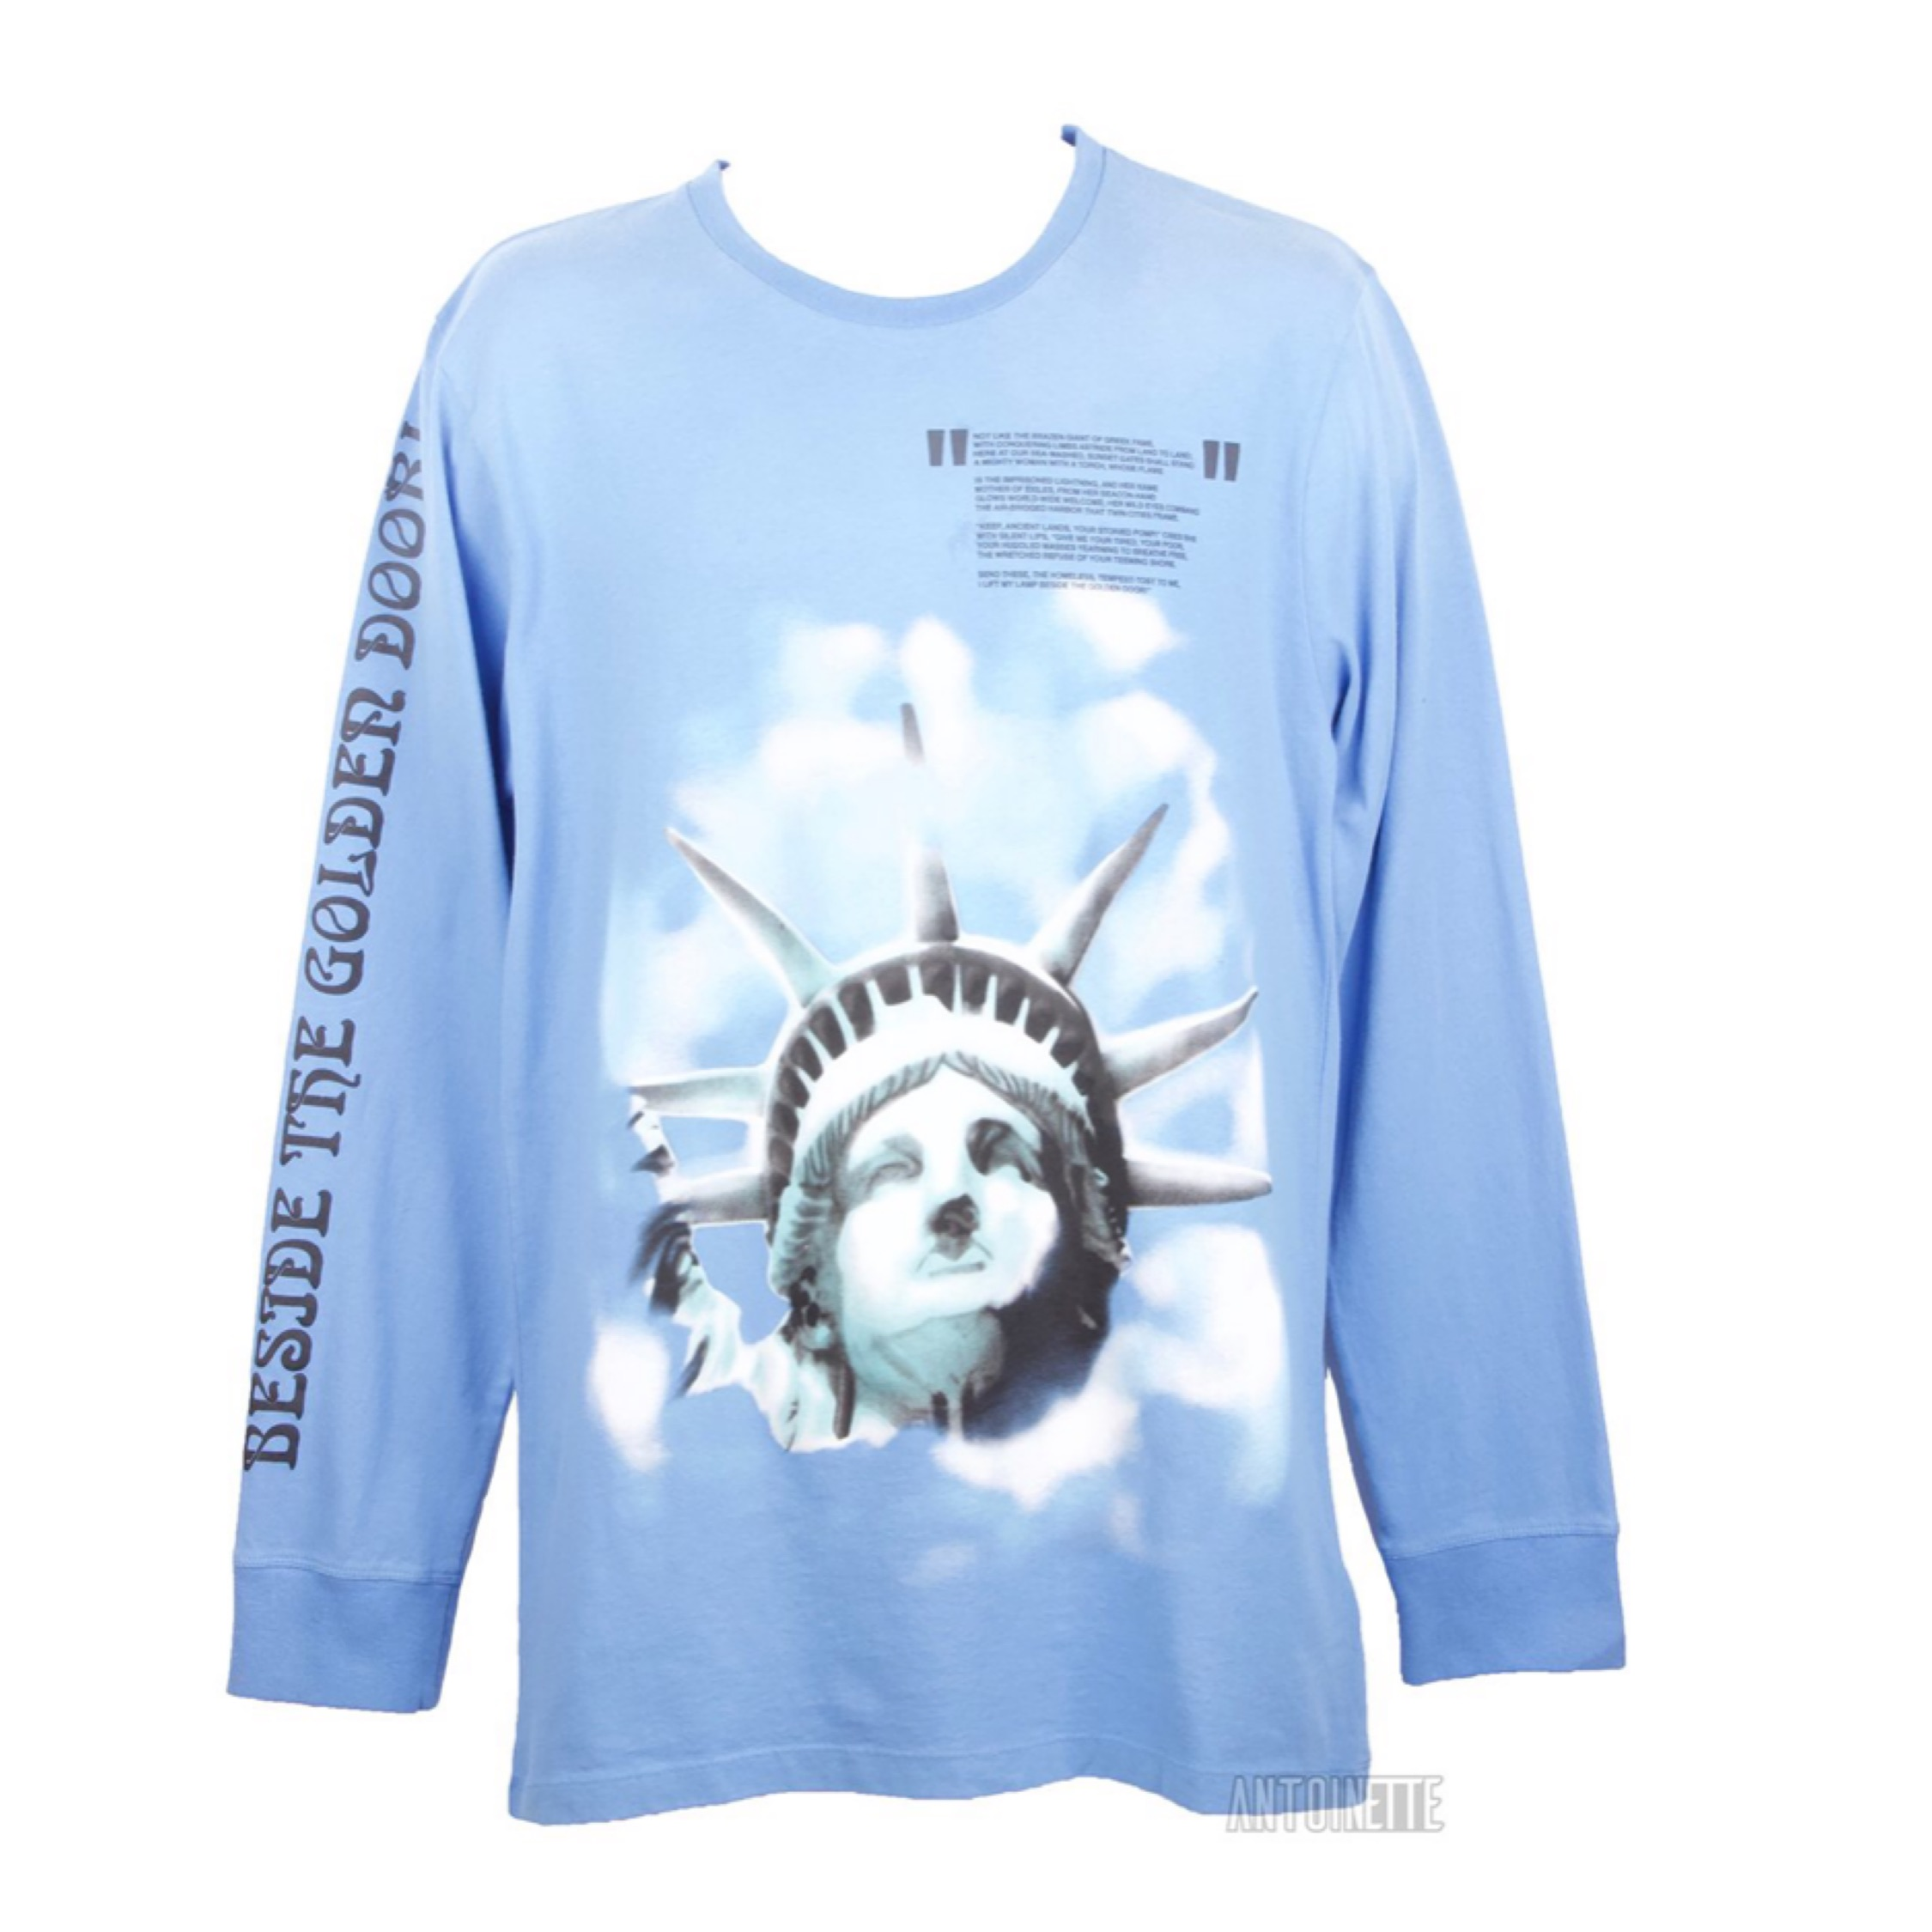 Off-White Blue Statue Of Liberty Long-Sleeve Shirt